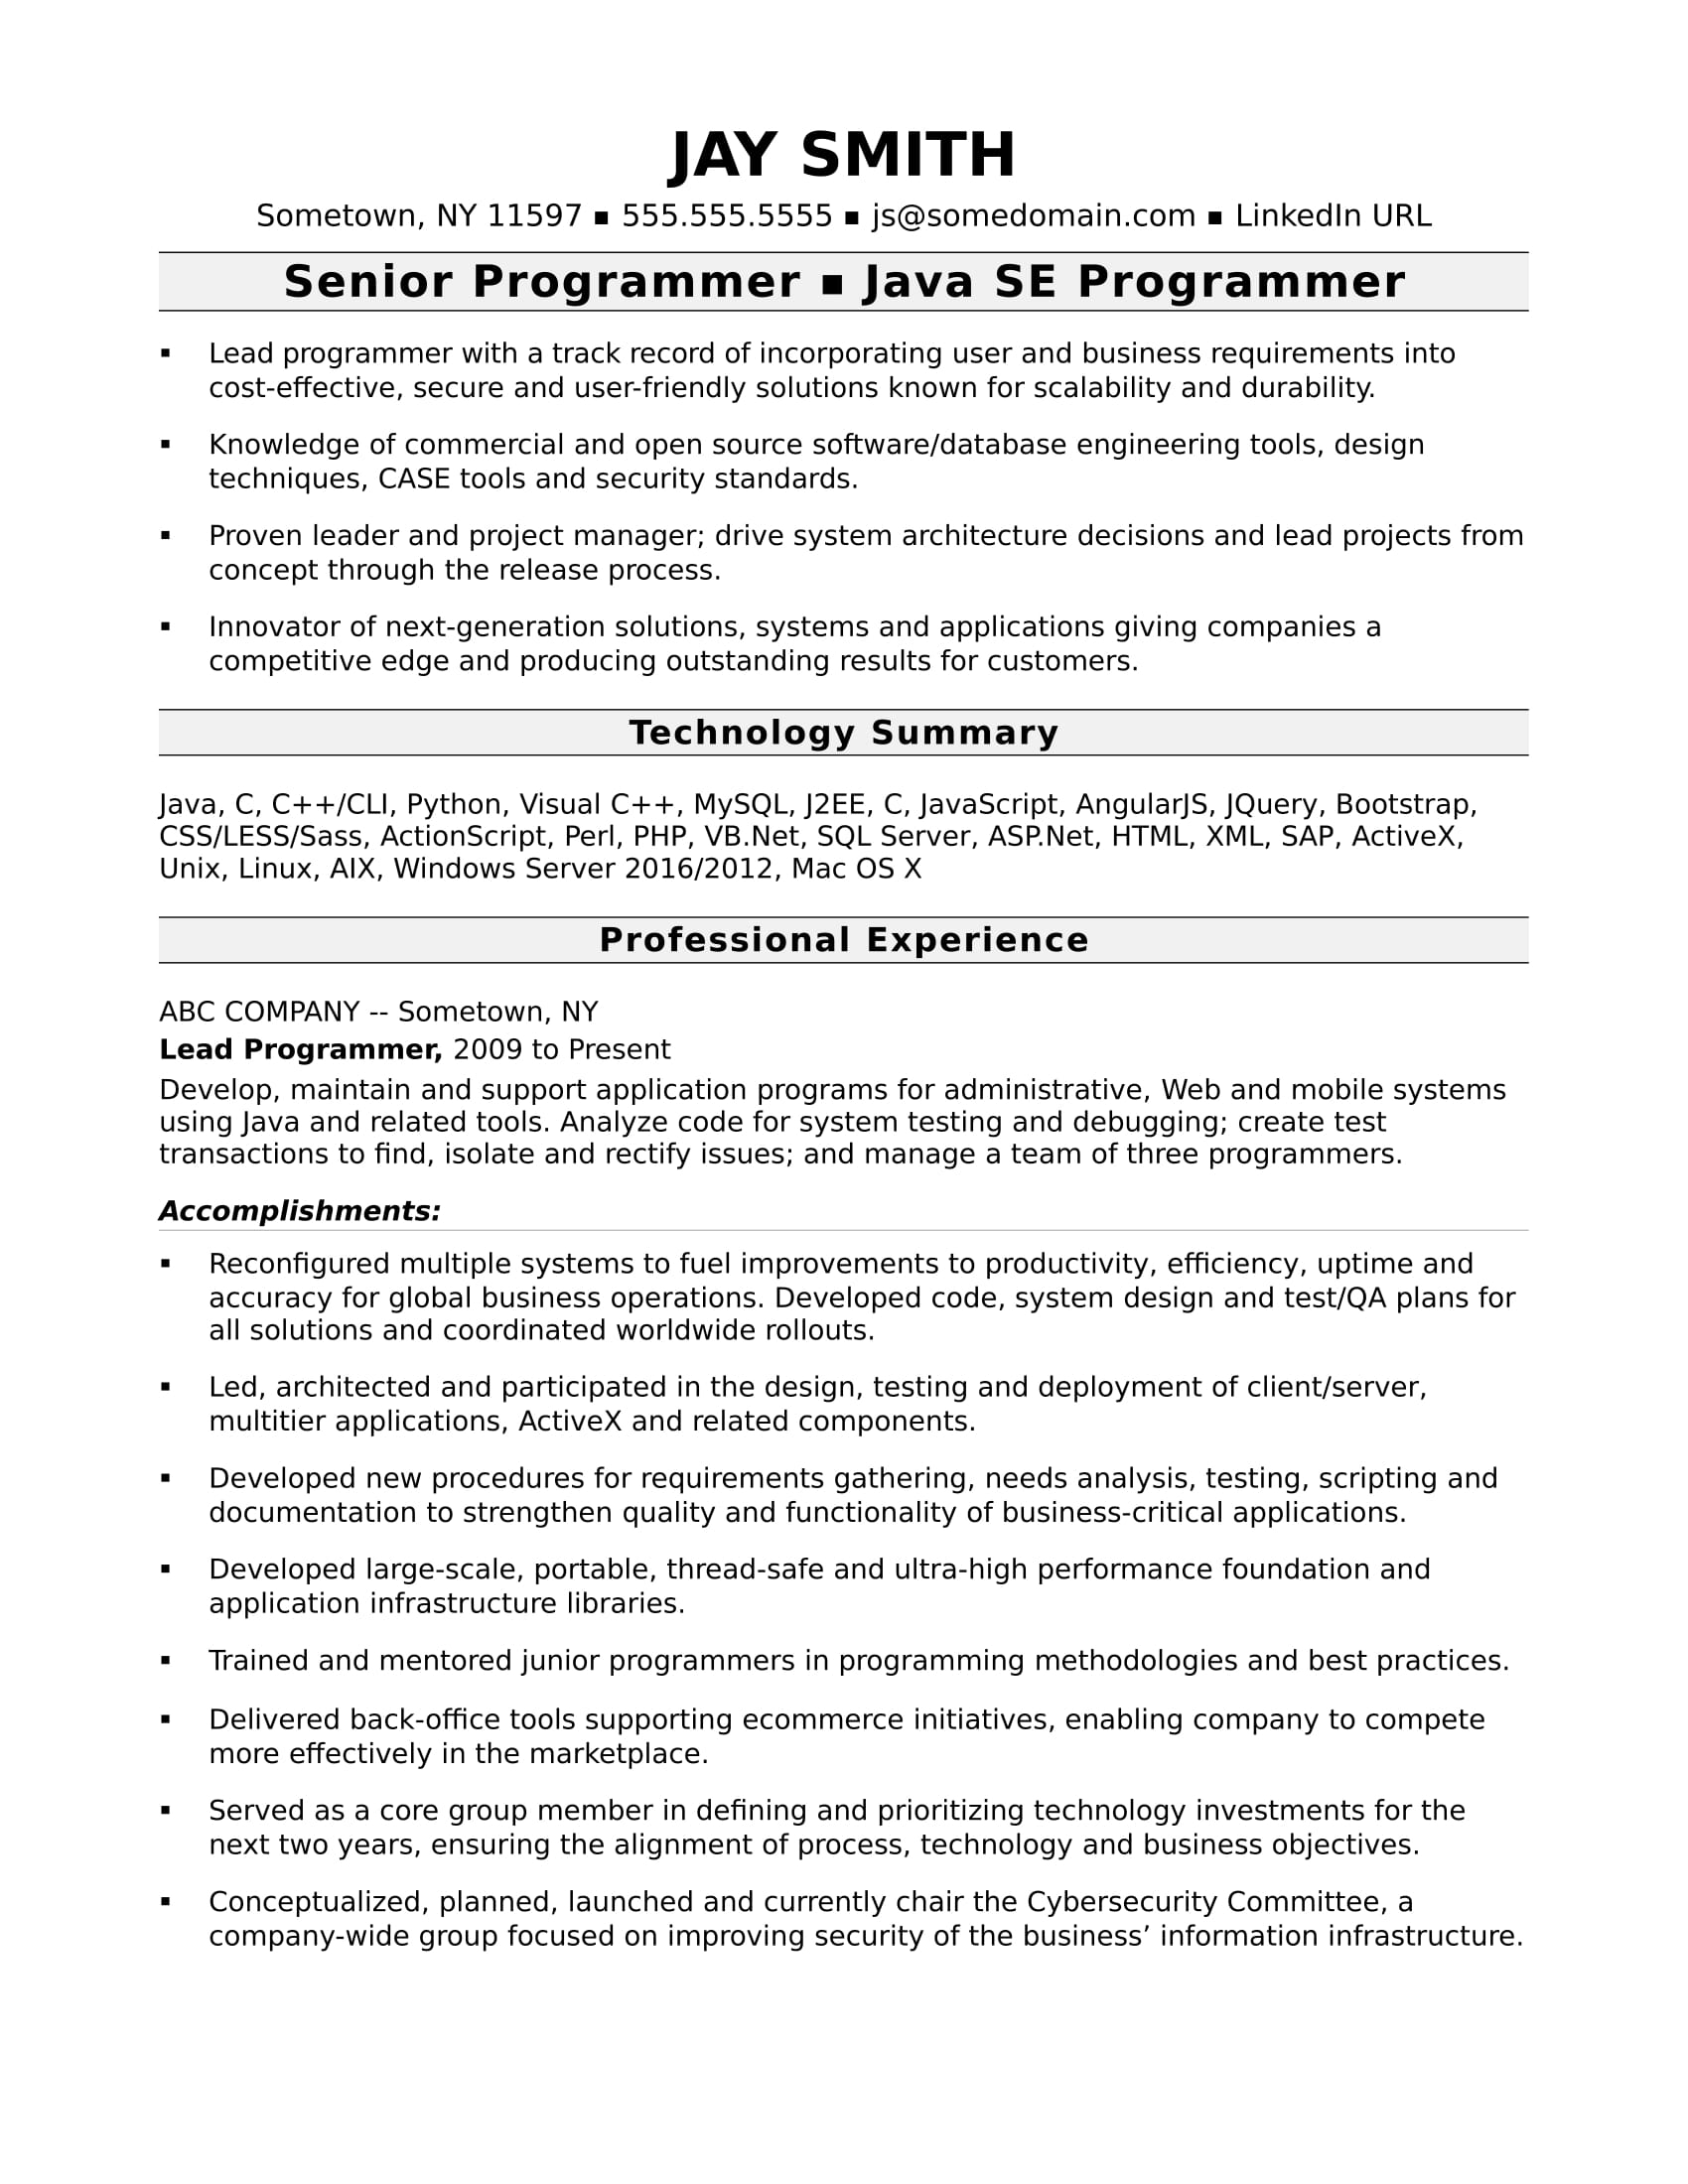 Sample resume for an experienced computer programmer monster sample resume for an experienced computer programmer yelopaper Images